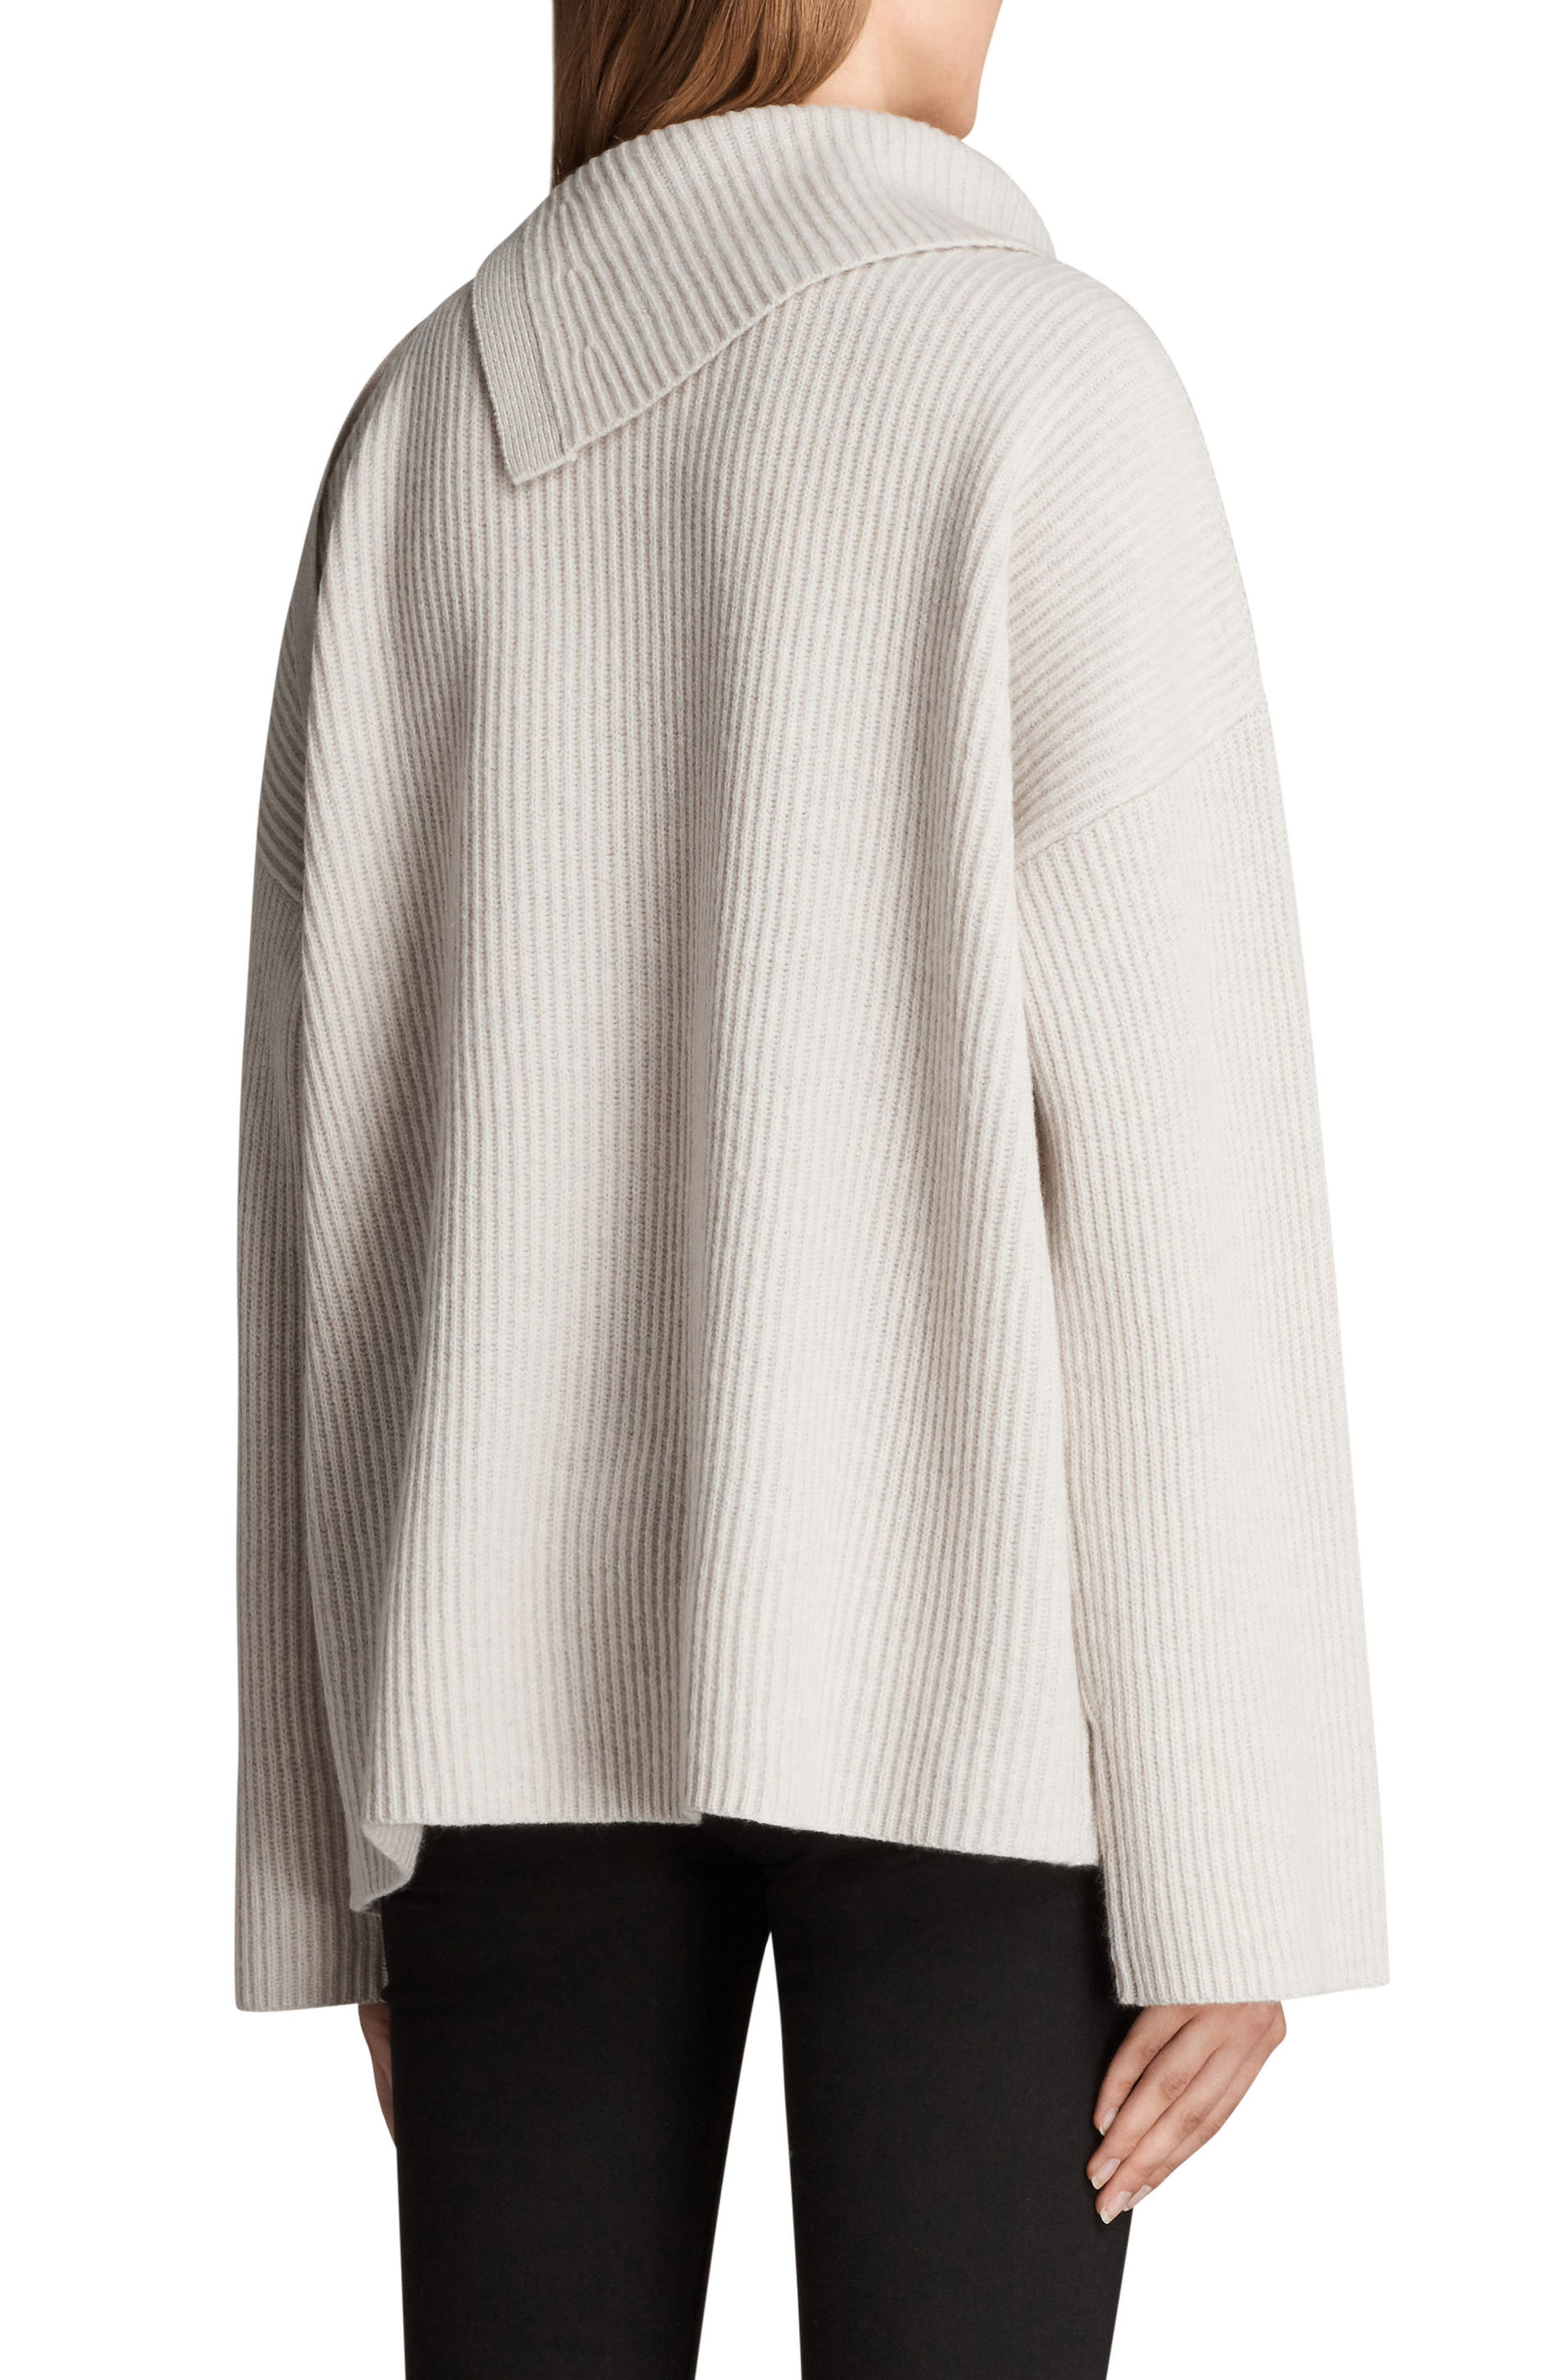 ALLSAINTS,                             Sura Tie Neck Sweater,                             Alternate thumbnail 2, color,                             252